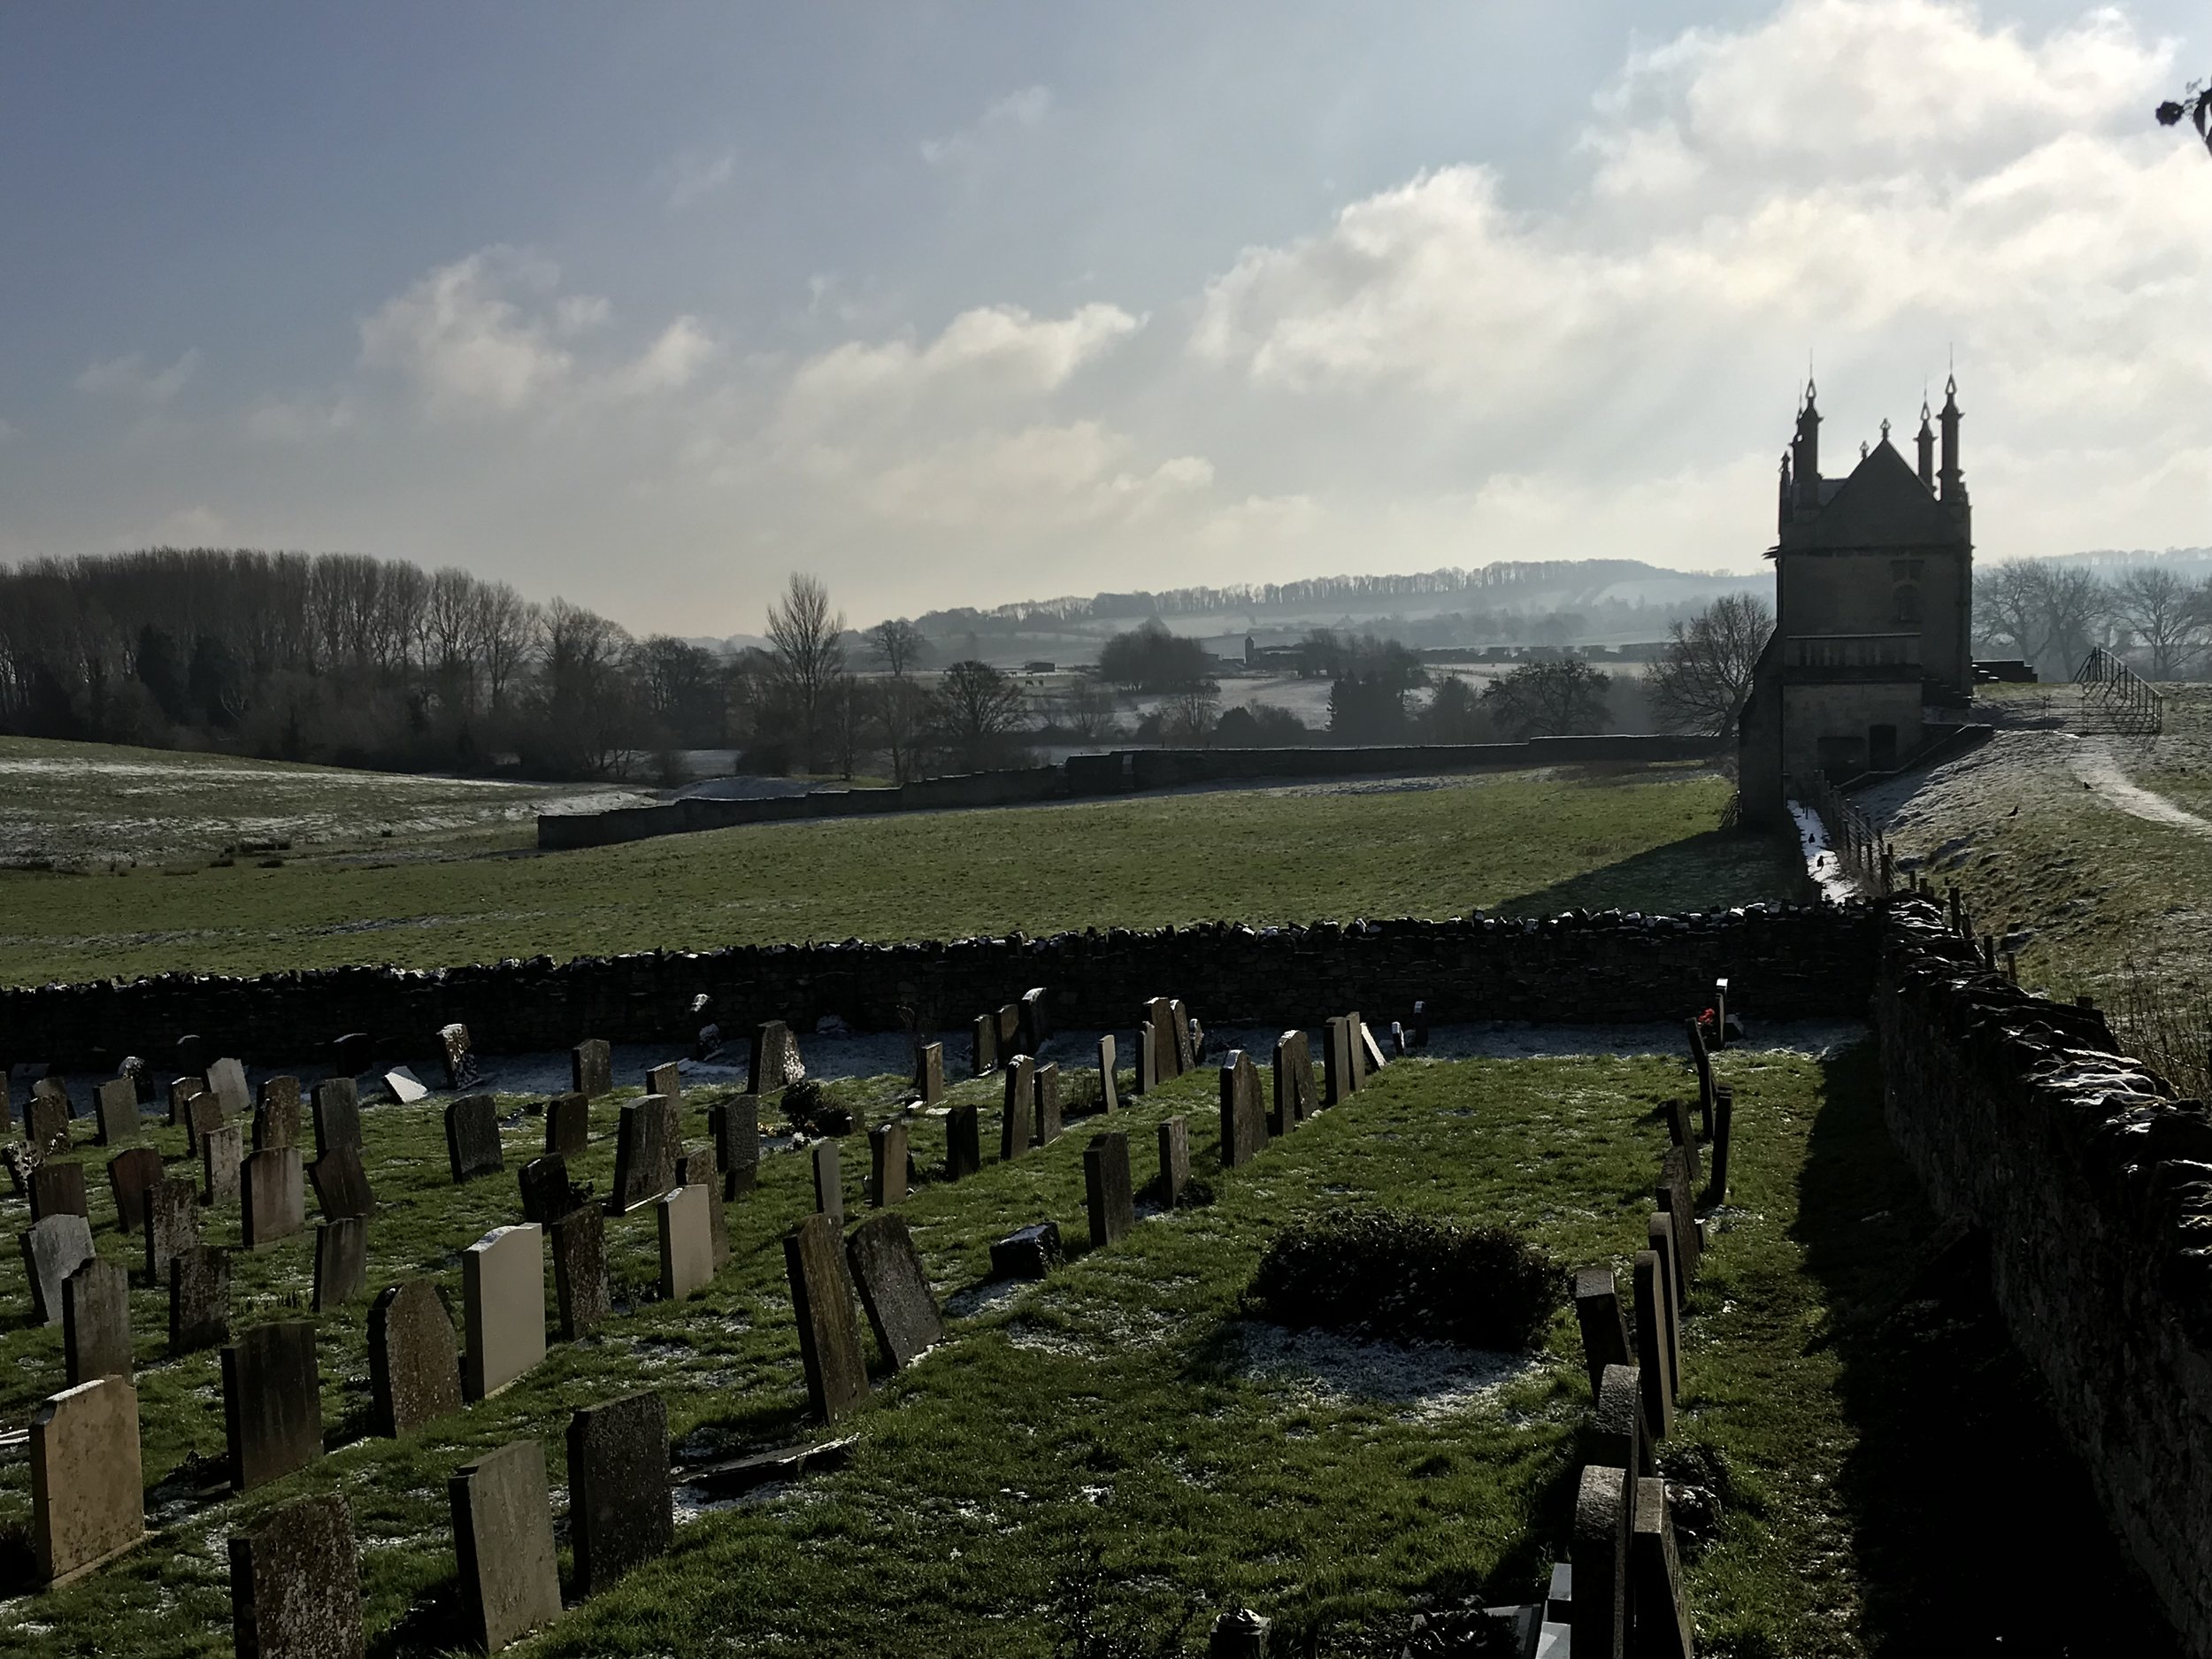 The beautiful view from the beautiful graveyard of St James parish church in Chipping Campden